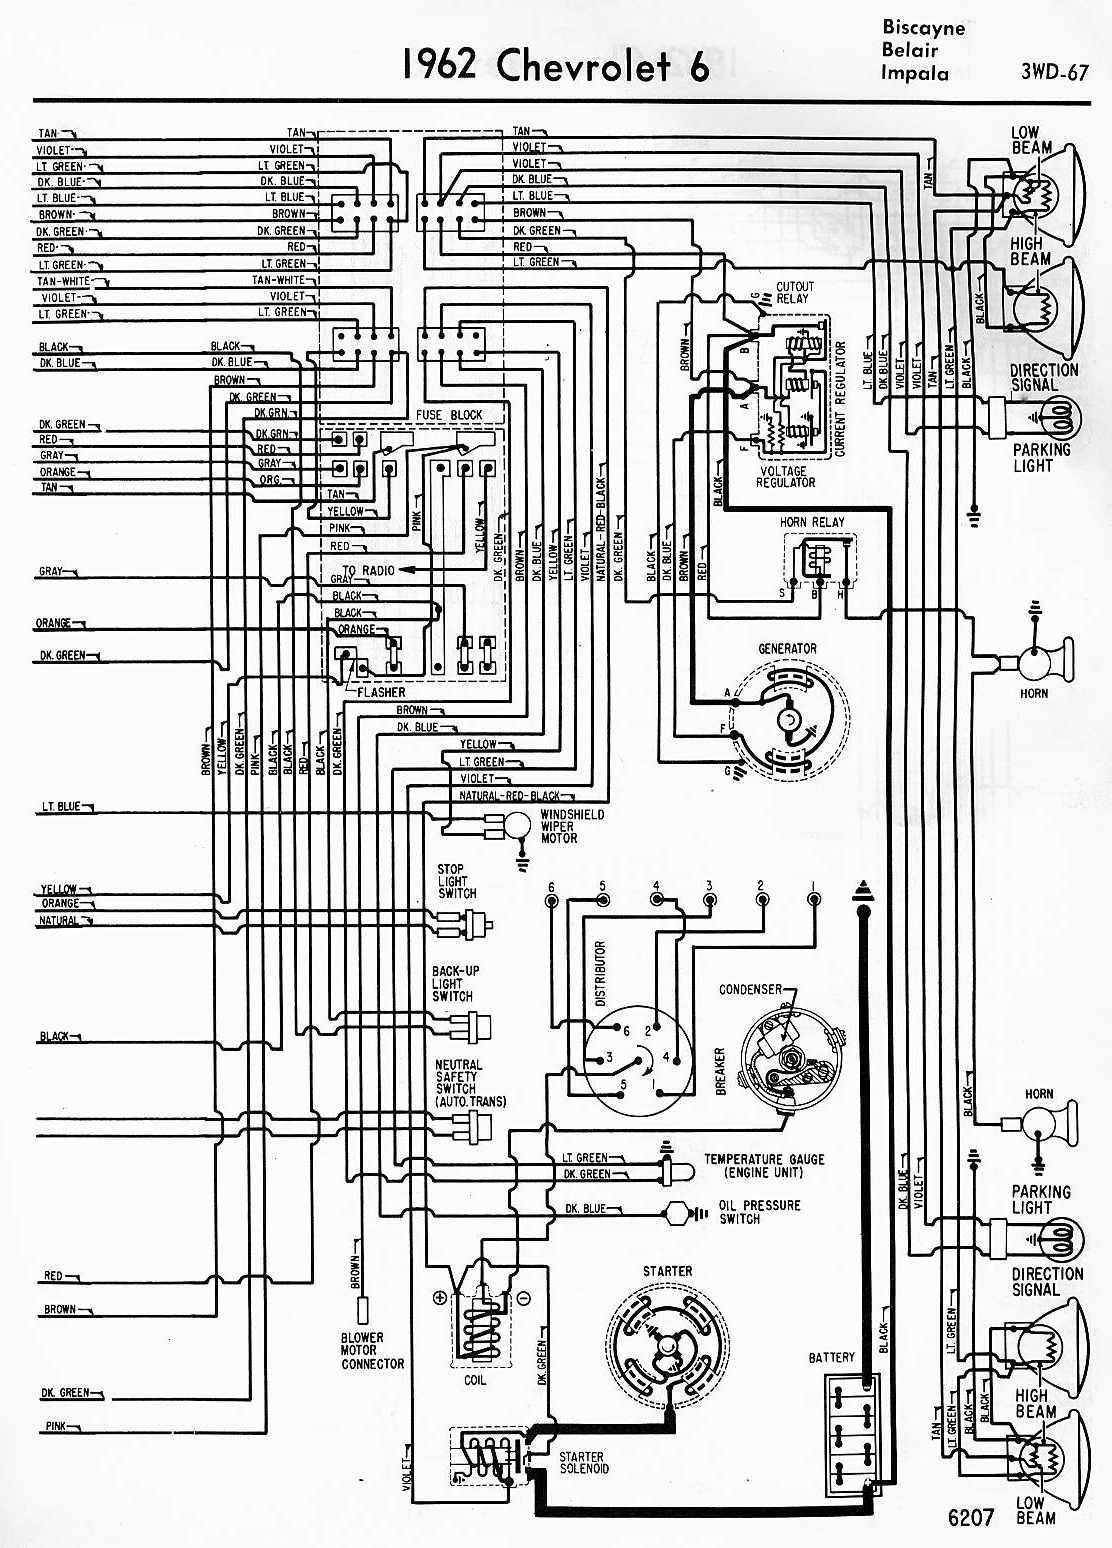 1966 Chrysler 300 Electric Window Wiring Diagram Alternator Harness Chevy Todays64 Completed Diagrams